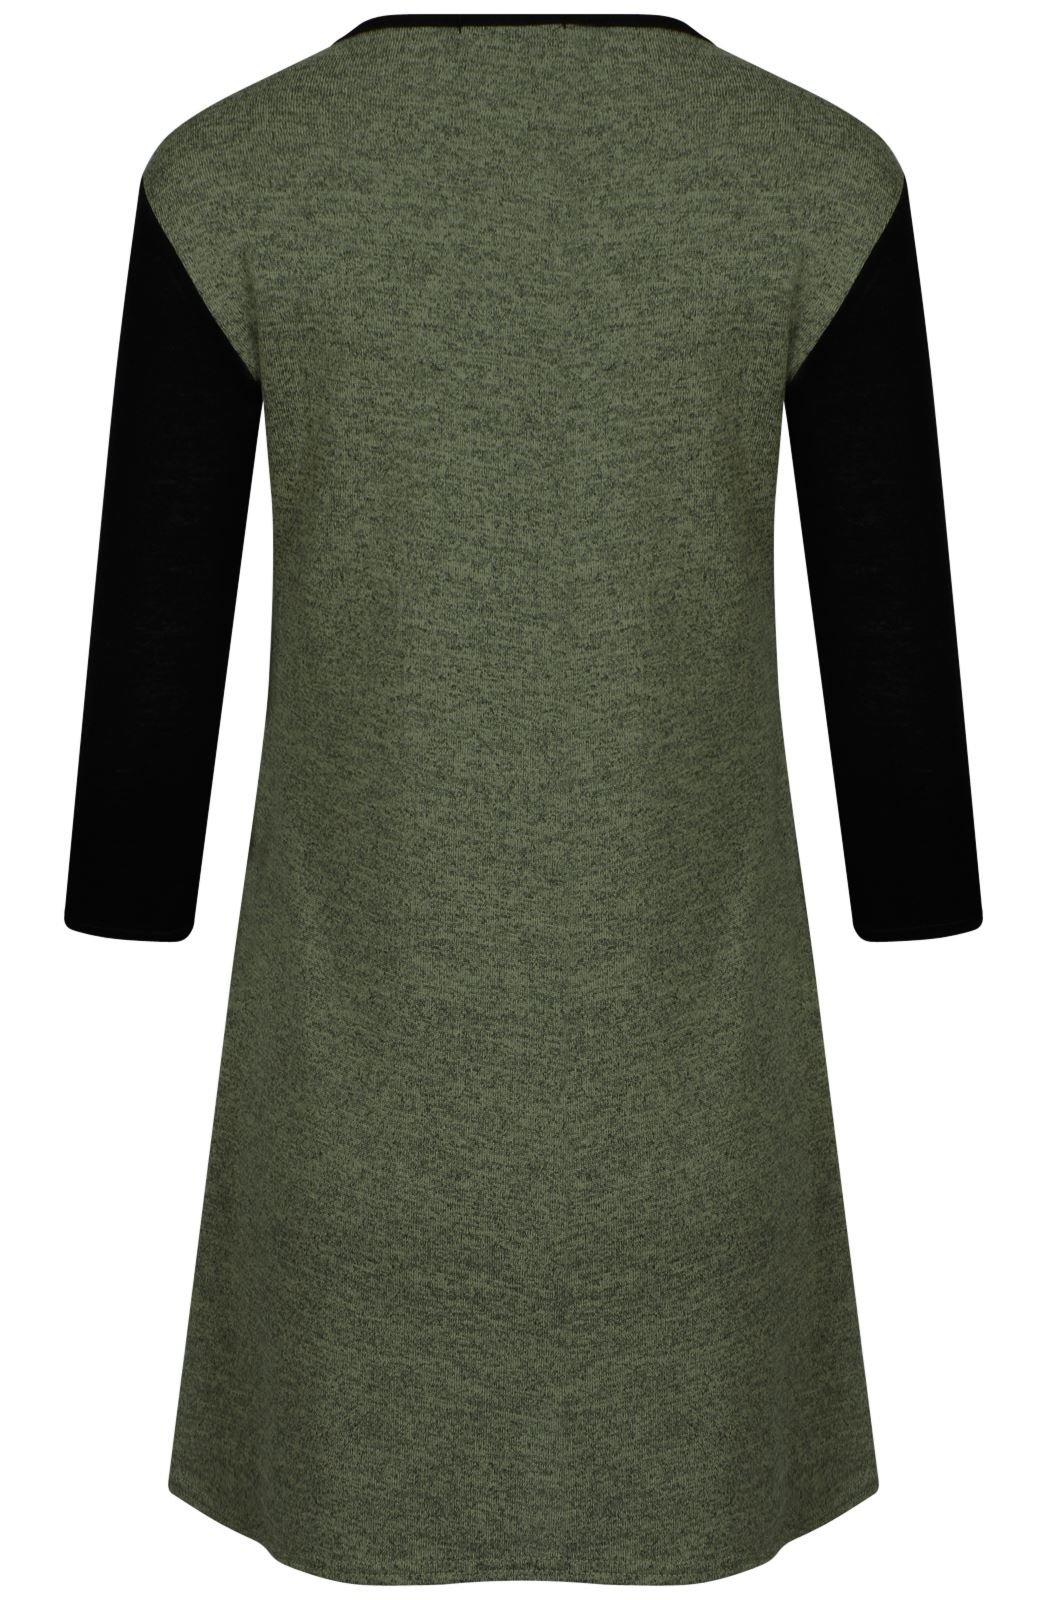 New-Ladies-Sleeve-Contrast-Color-Skater-Dress-8-14